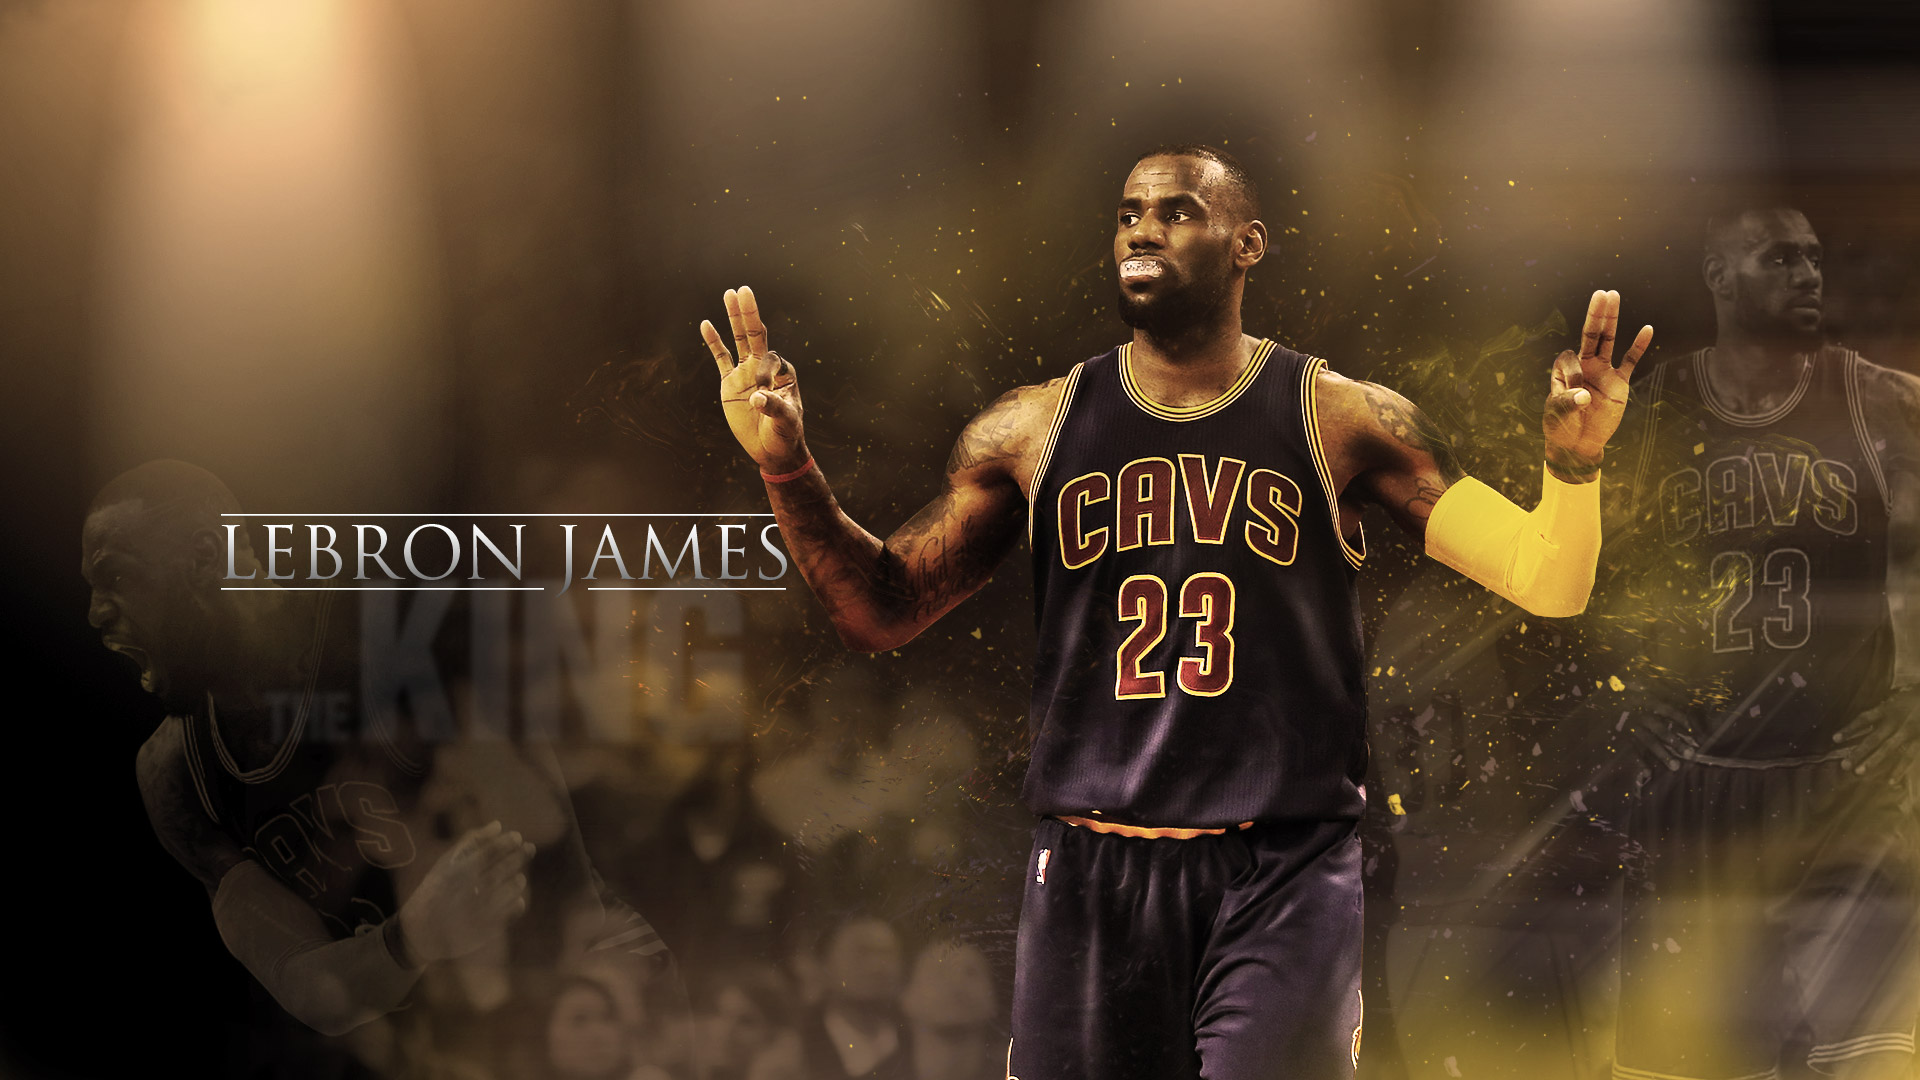 48+] LeBron James Wallpaper 2016 on